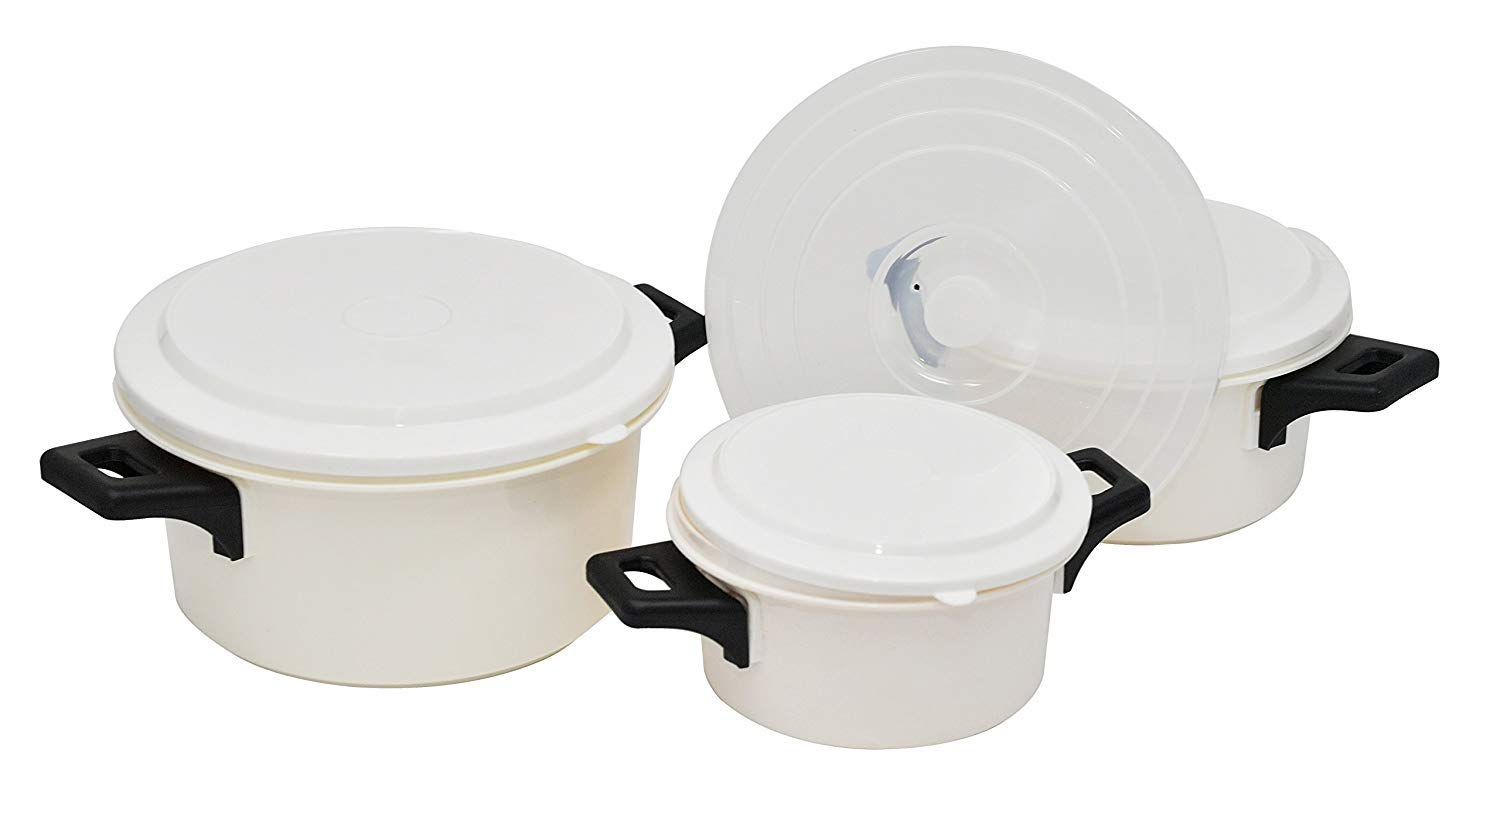 7 Piece Microwave Cooking Pot Set with Handles | 3 Pots, 3 Lids and 1 Universal Vented Lid - by Home-X